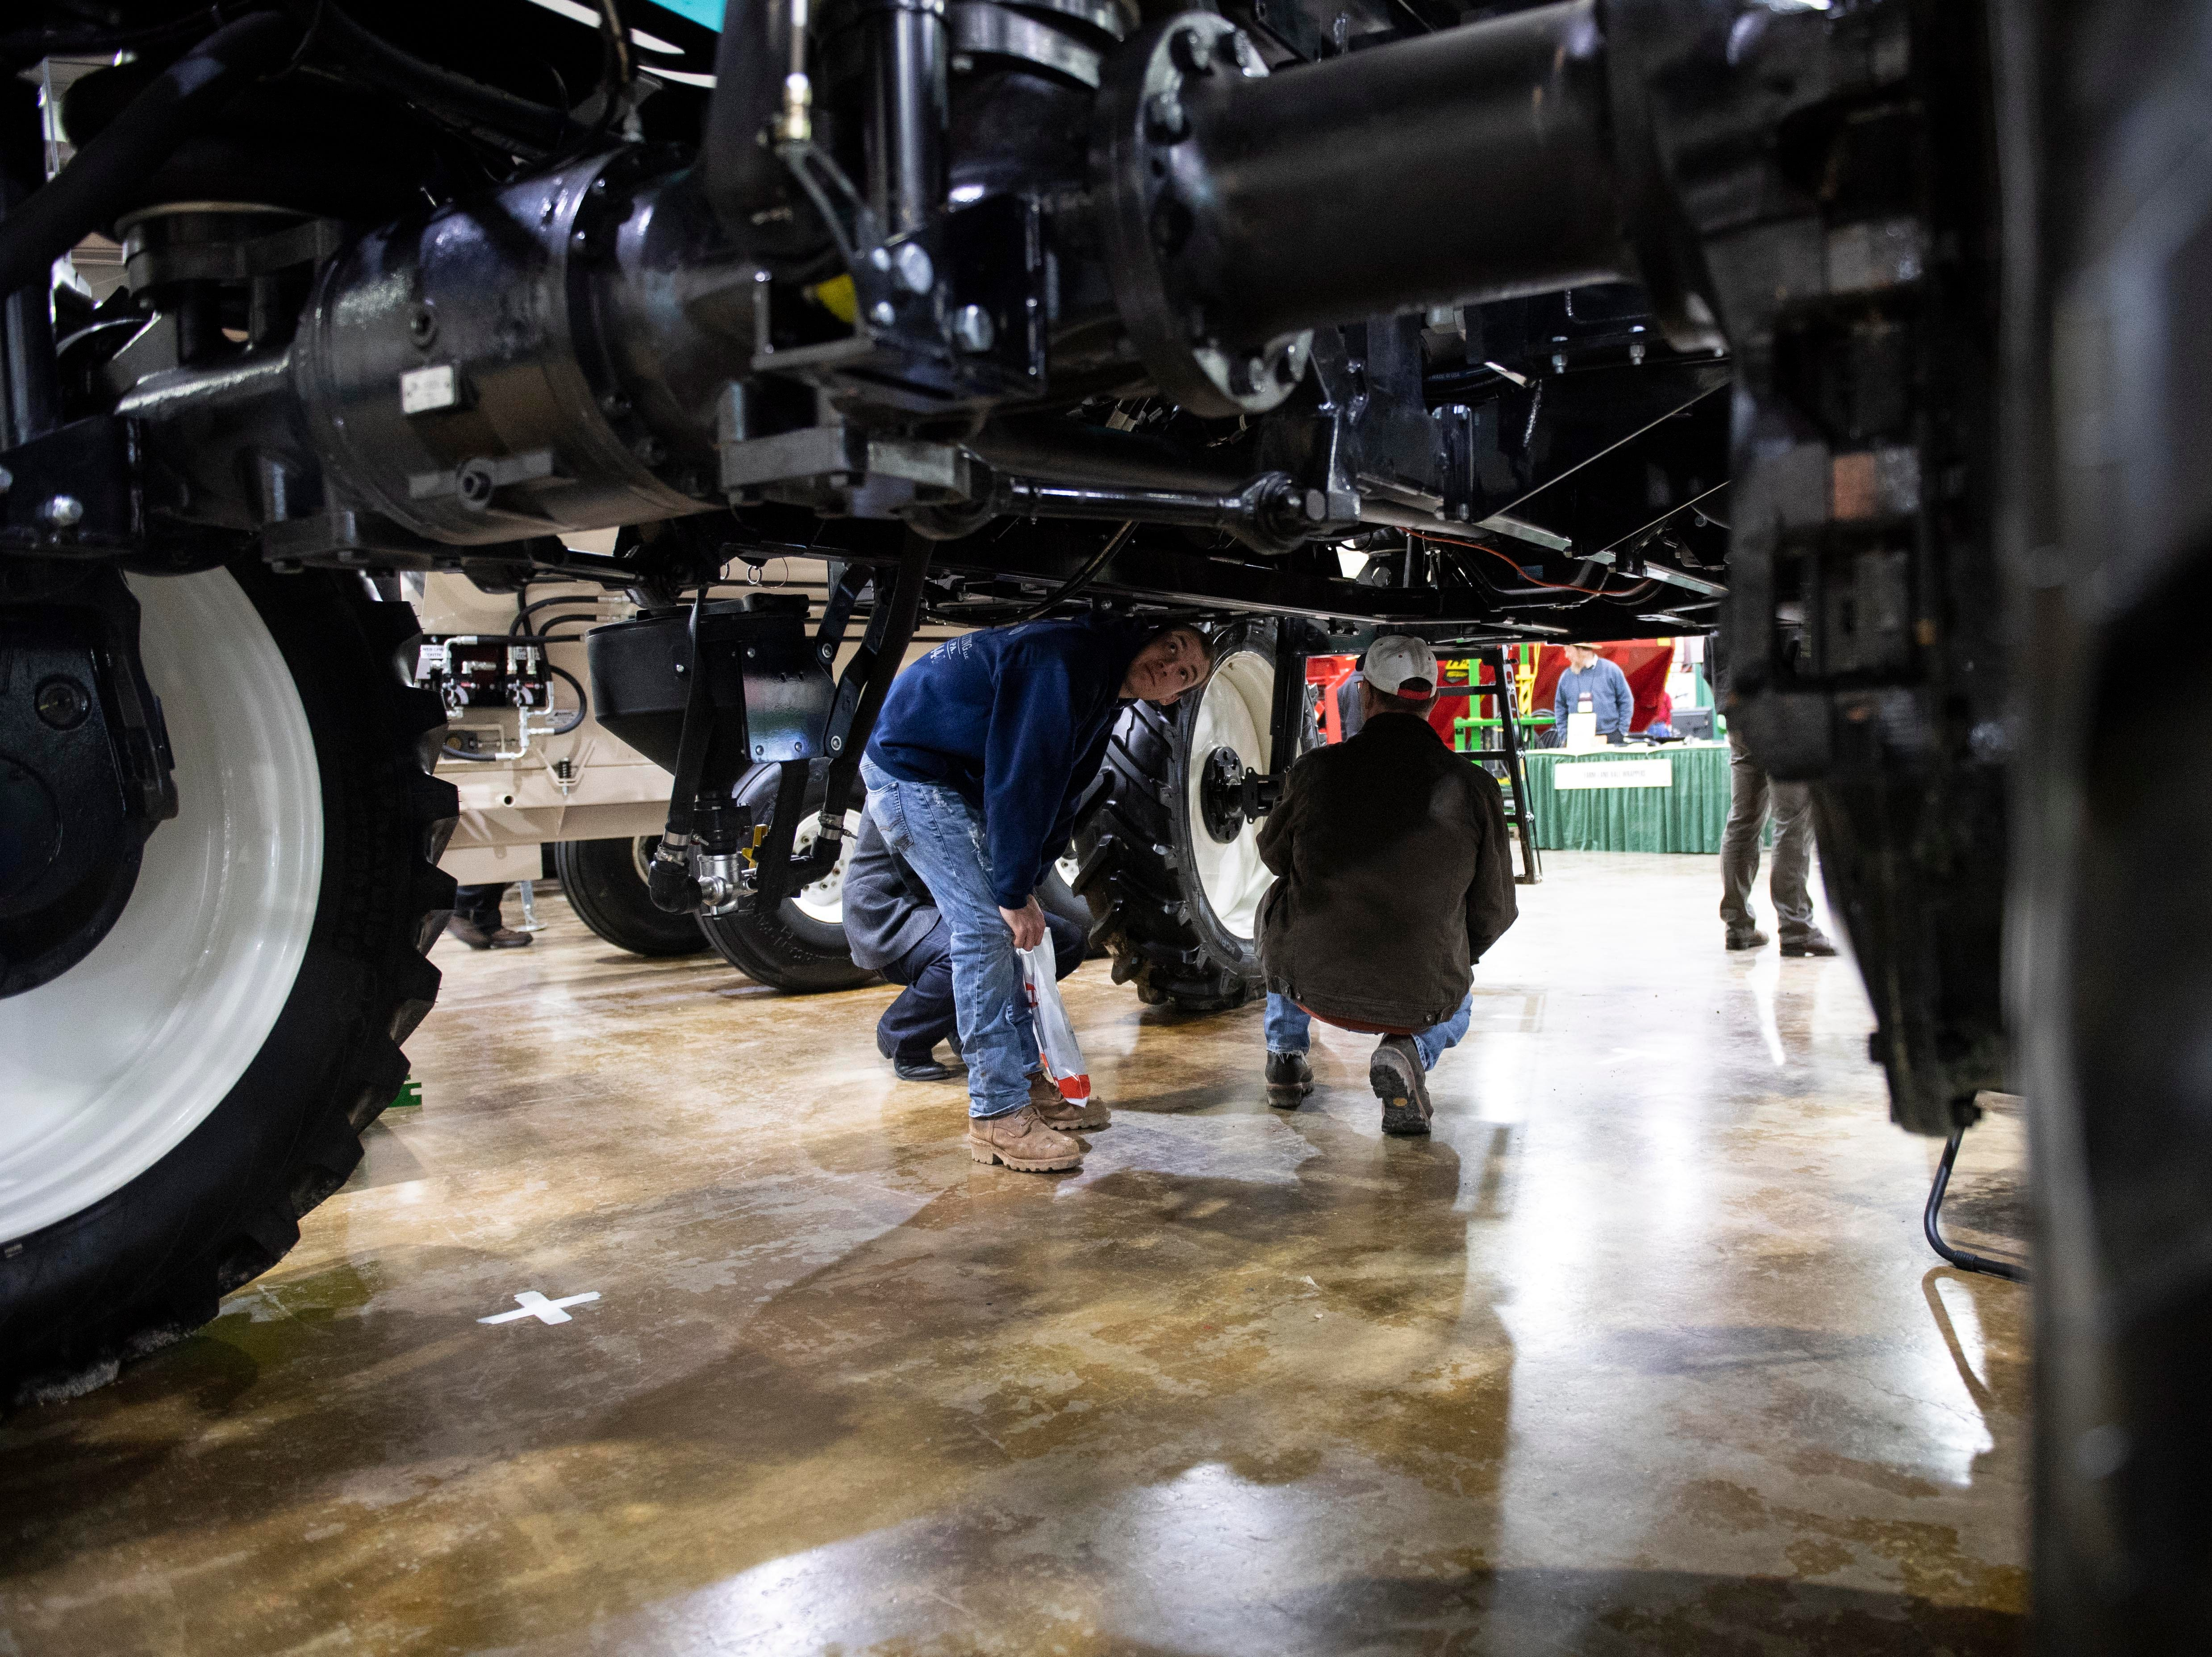 Folks attending the Keystone Farm Show look over the underside of a sprayer, Tuesday, Jan. 8, 2019. The Keystone Farm Show has nearly 420 vendors and is expected to bring up to 15,000 people to the York Expo Center. The show runs through Thursday, Jan. 10.